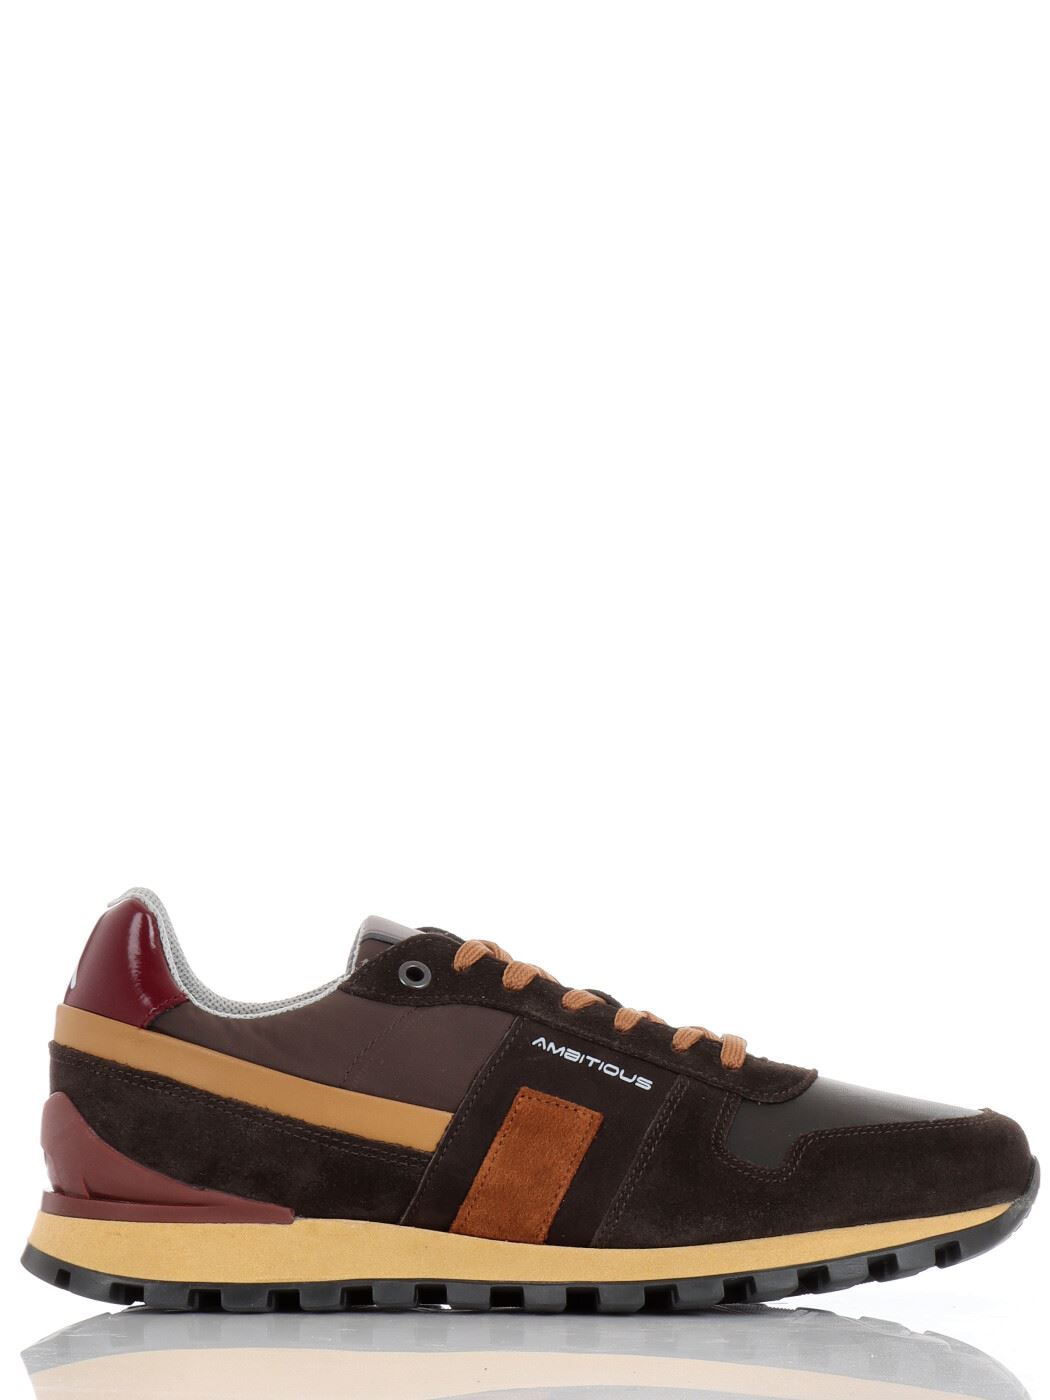 SNEAKERS AMBITIOUS 10457C-1325